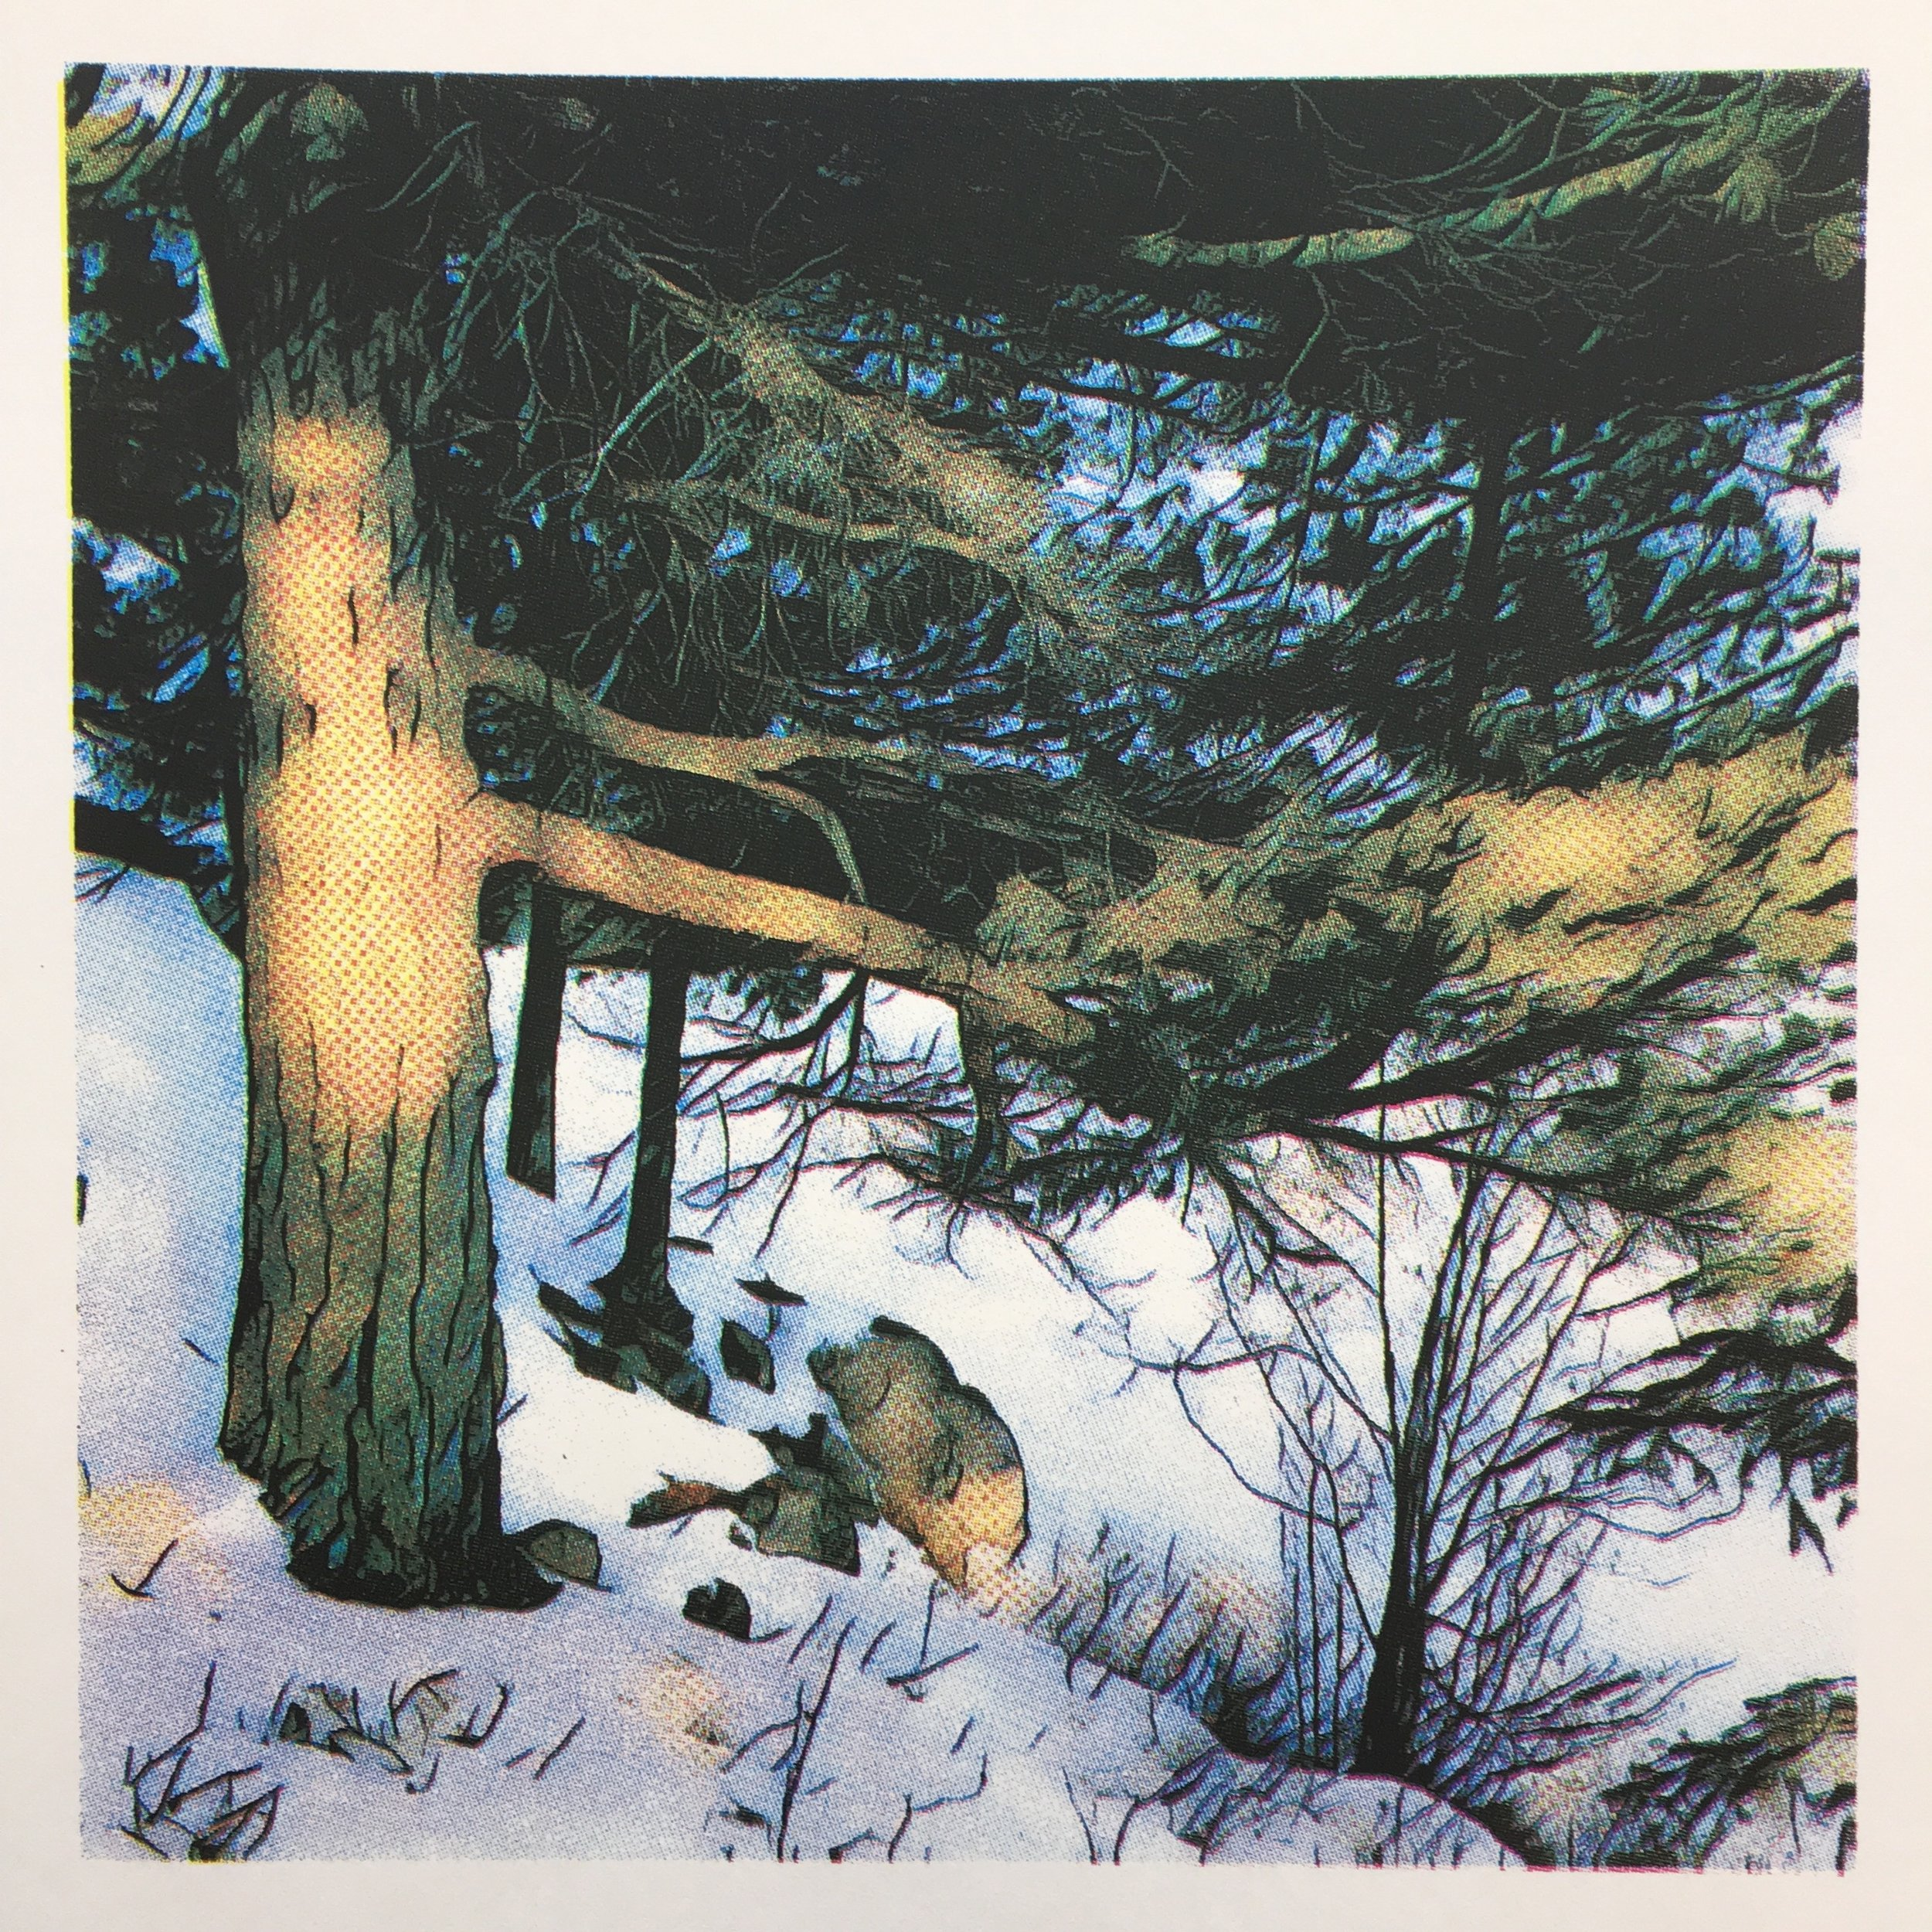 """Picnic Island - Winter"", Peter Graham, screen print on paper, 8"" x 8"", edition of 10, 2018. $150"